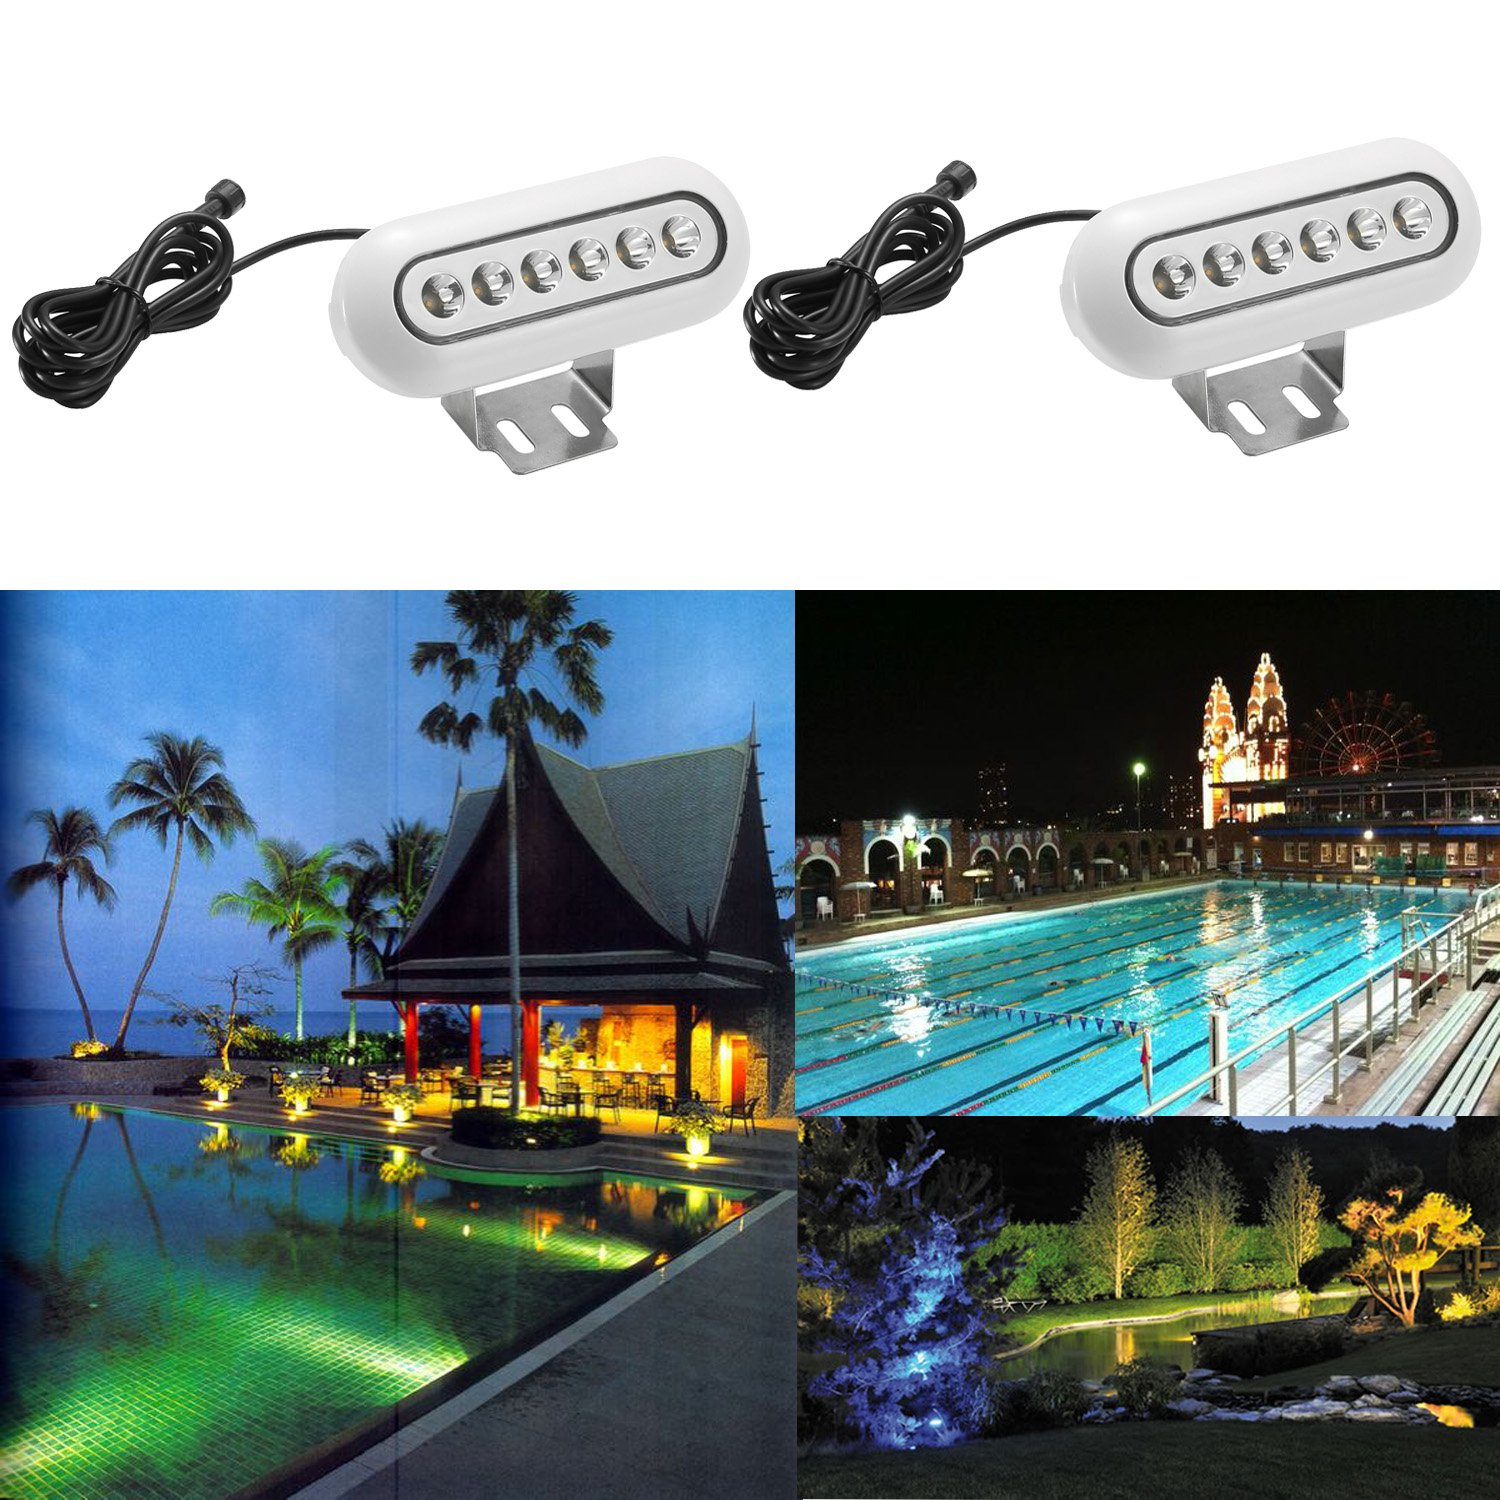 2x QACA RGB LED Underwater Lights with Remote Control 304 Stainless Steel, Surface Mount, DC 12V, Waterproof IP68 for Aquarium, Pond, Swimming Pool Decoration on Party, Wedding, Christmas, Halloween by QACA